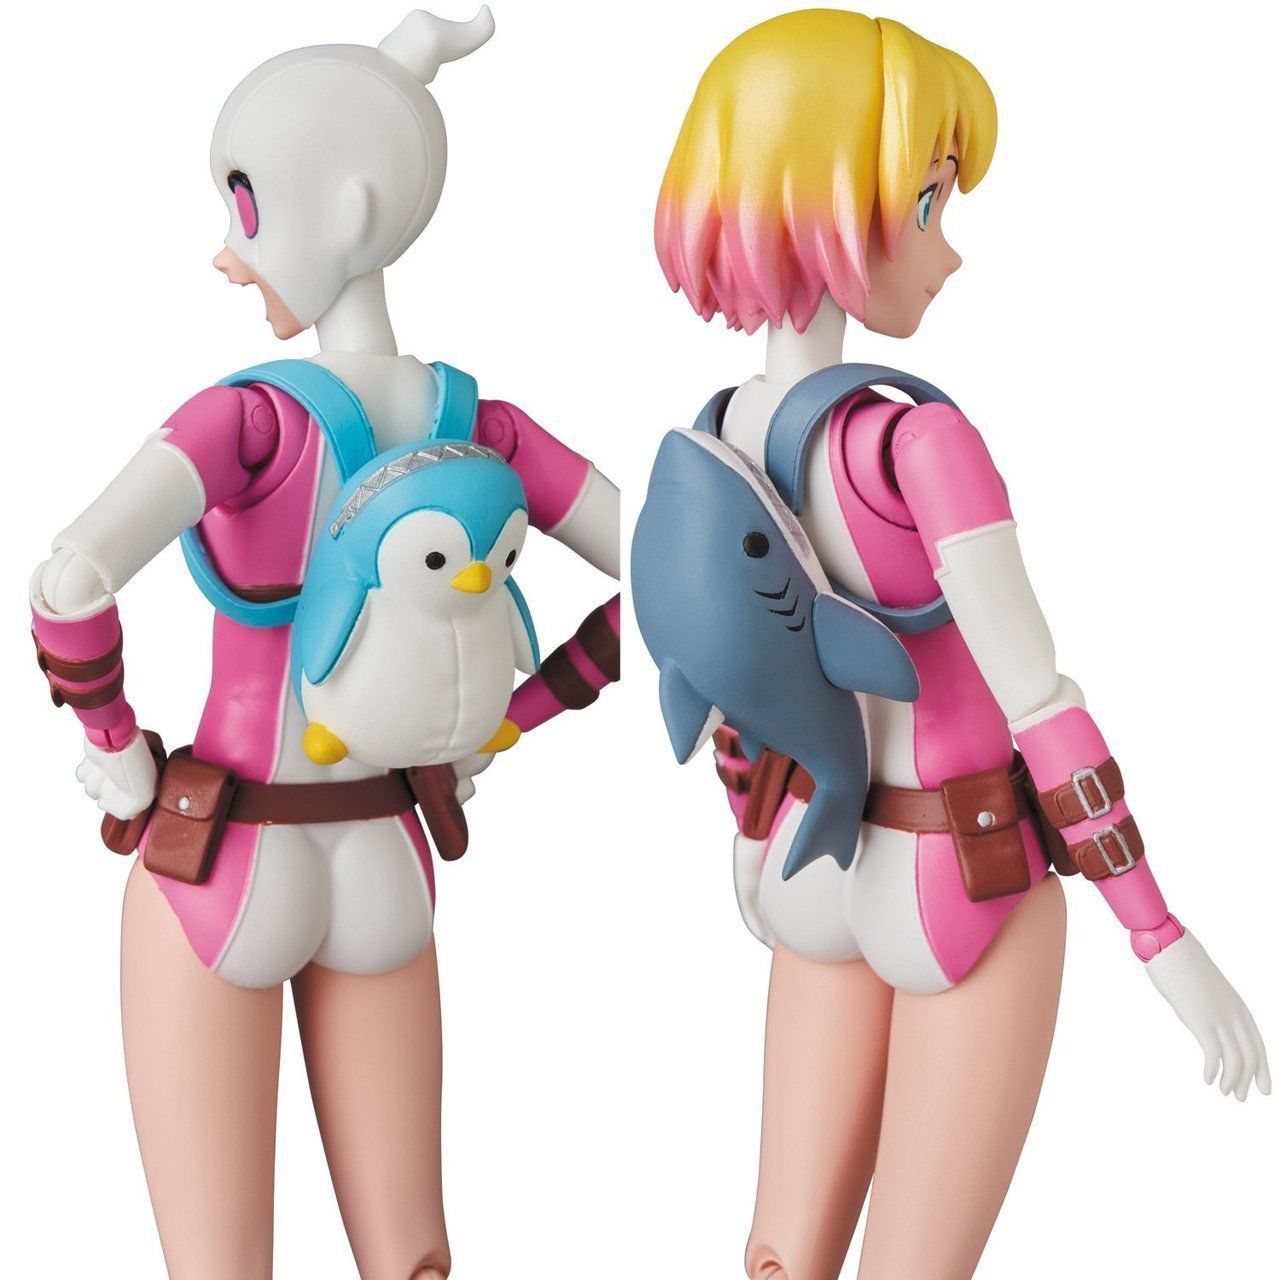 Medicom MAFEX 071 Marvel Gwenpool Action Figure